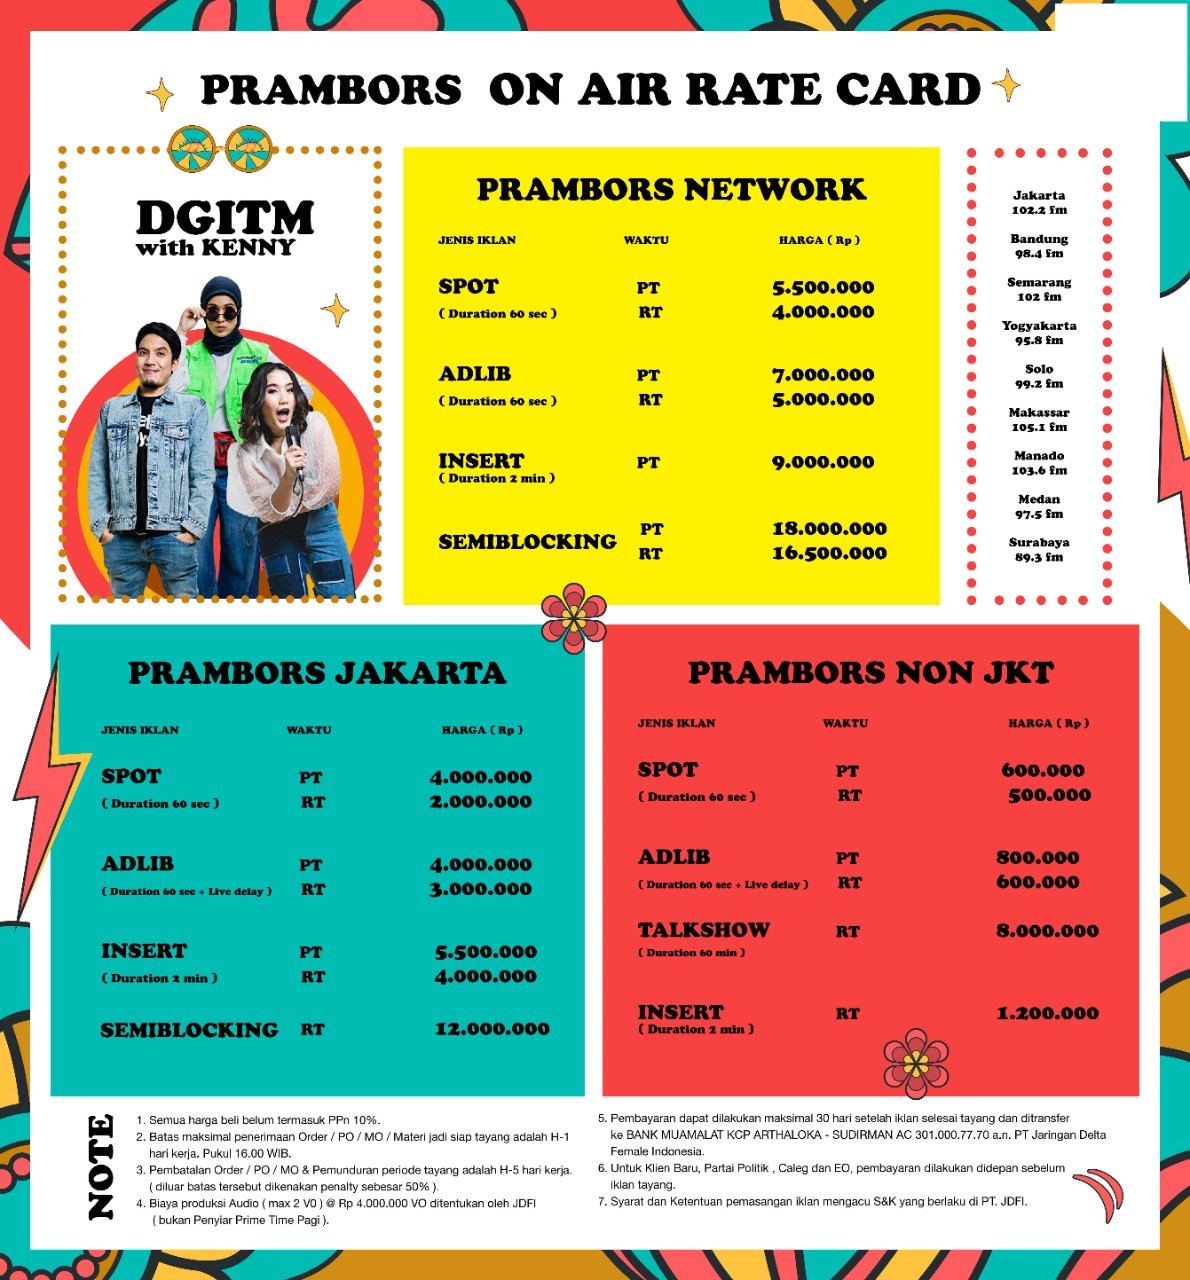 rate card 1